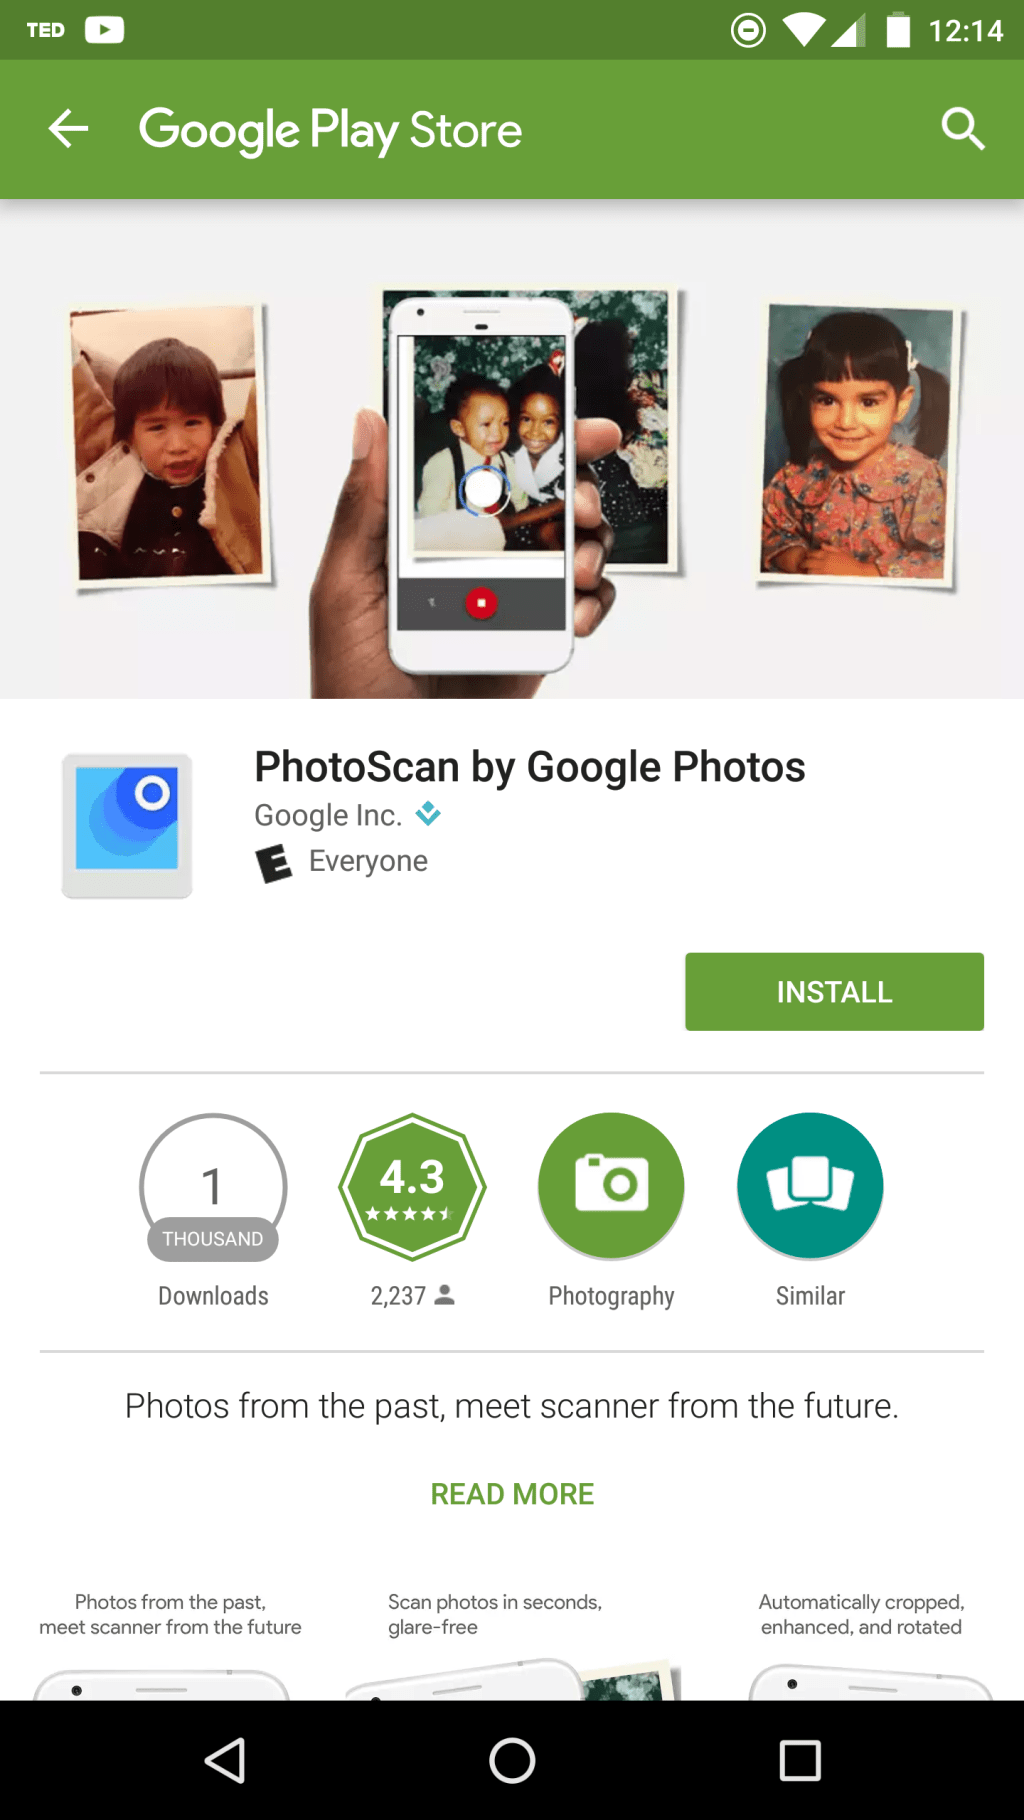 Google Launches PhotoScan Android App : Scanner From the Future